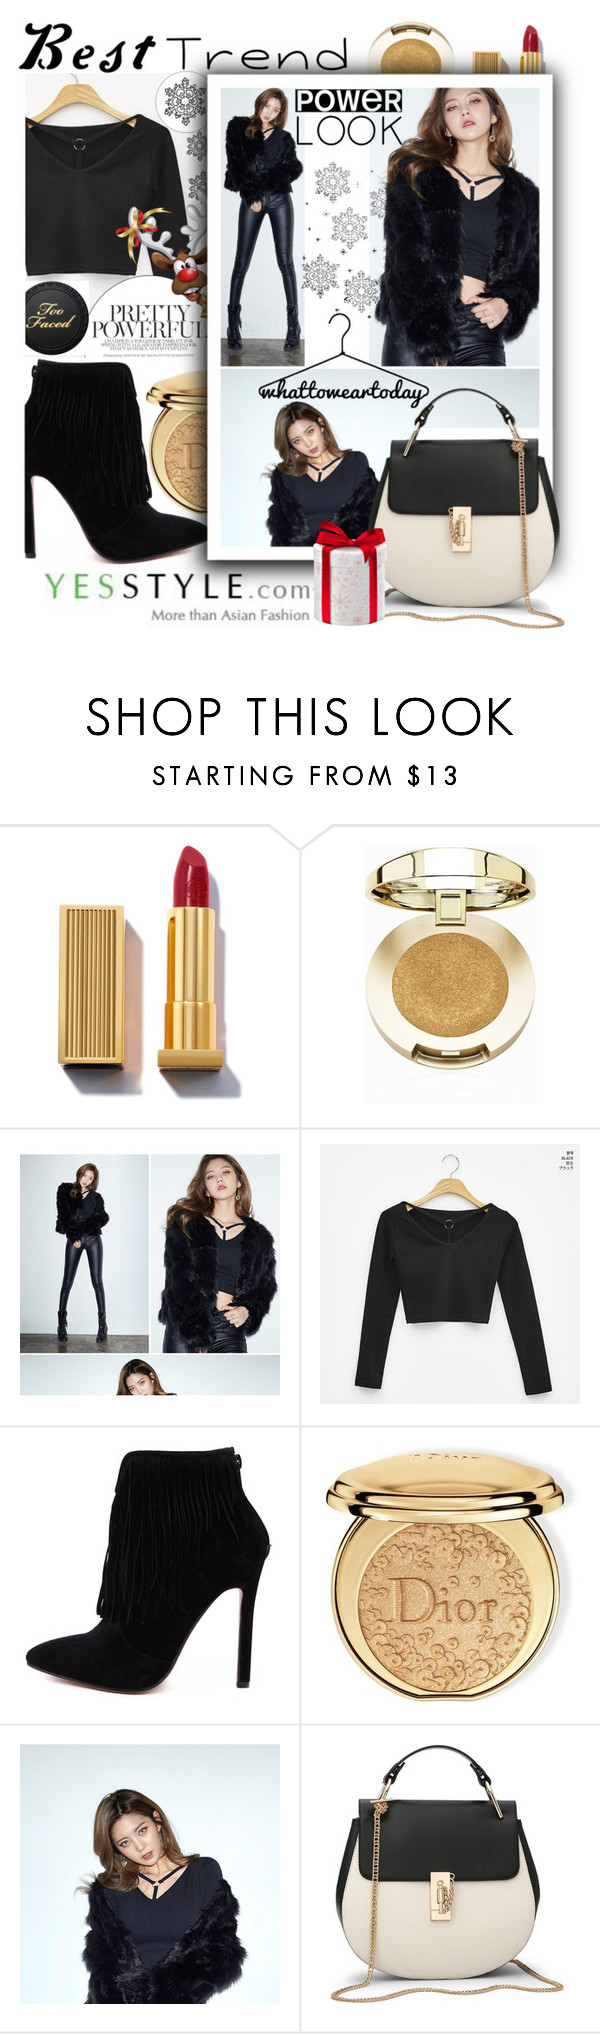 """""""Walk in style with YesStyle shoes!"""" by anin-kutak ❤ liked on Polyvore featuring Milani, chuu and Christian Dior"""